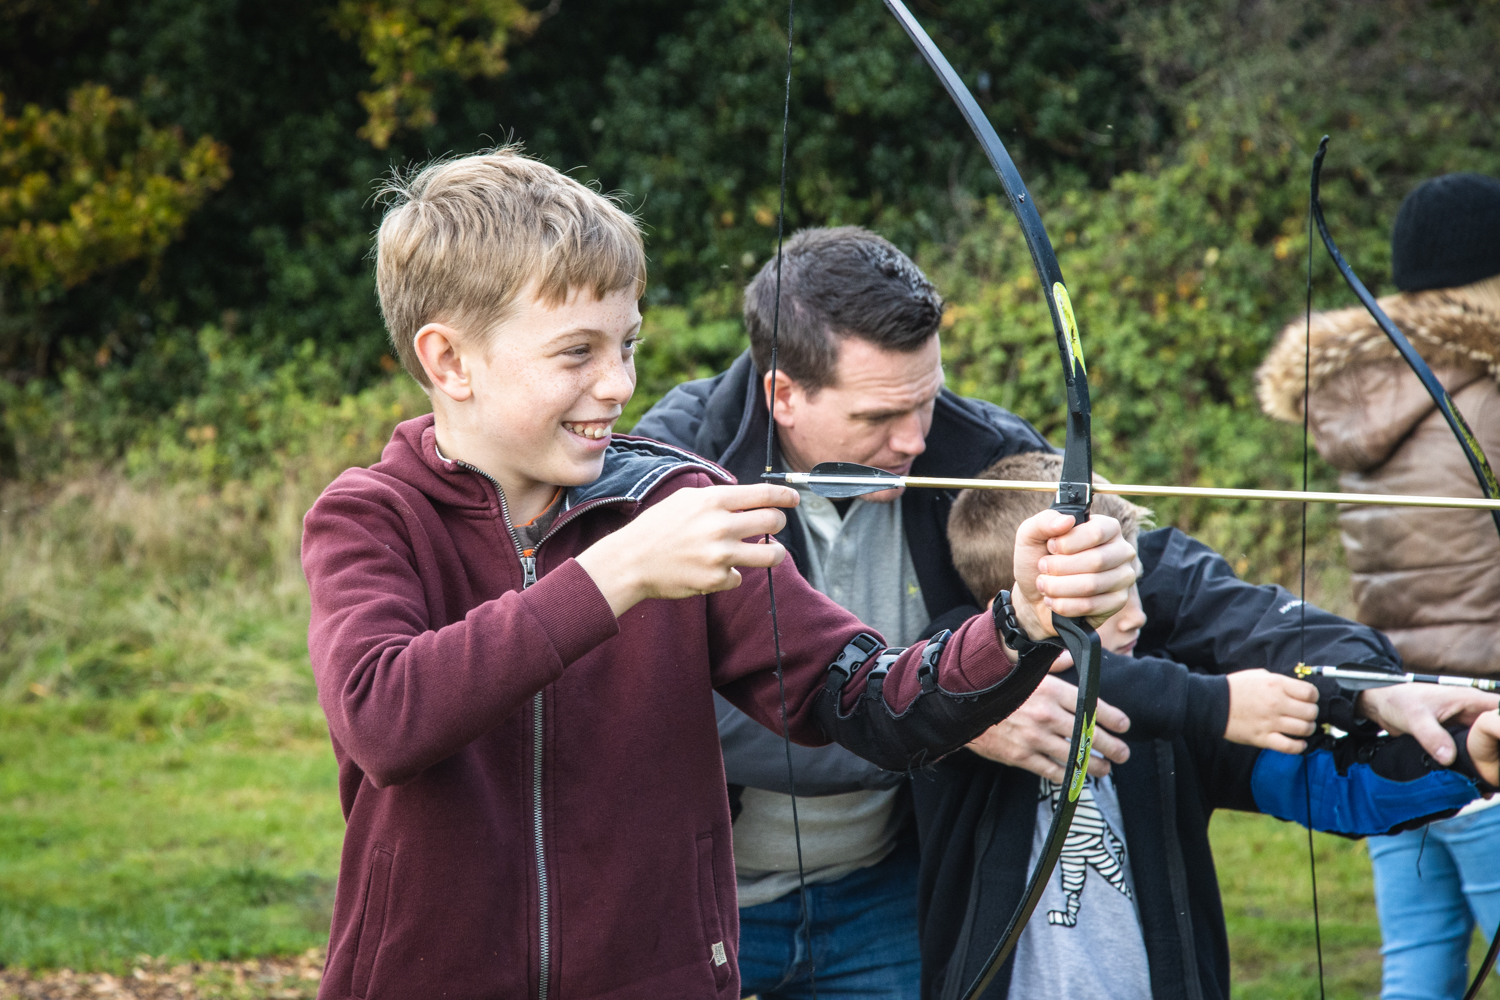 A young boy enjoying a some spooky themed fun during a Halloween Archery session.